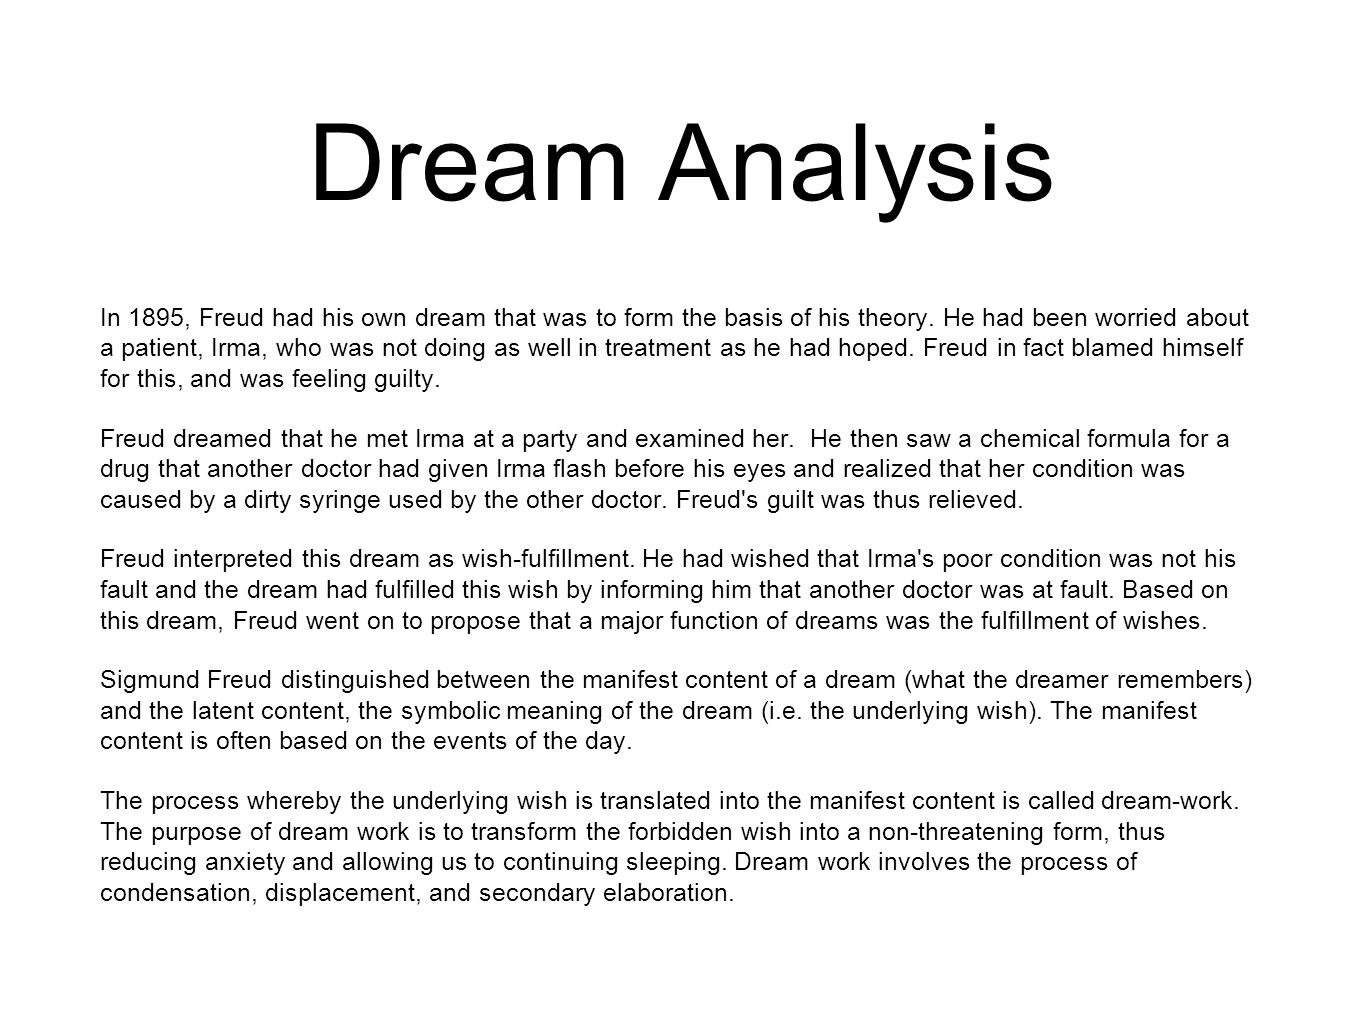 Food journal analysis essay